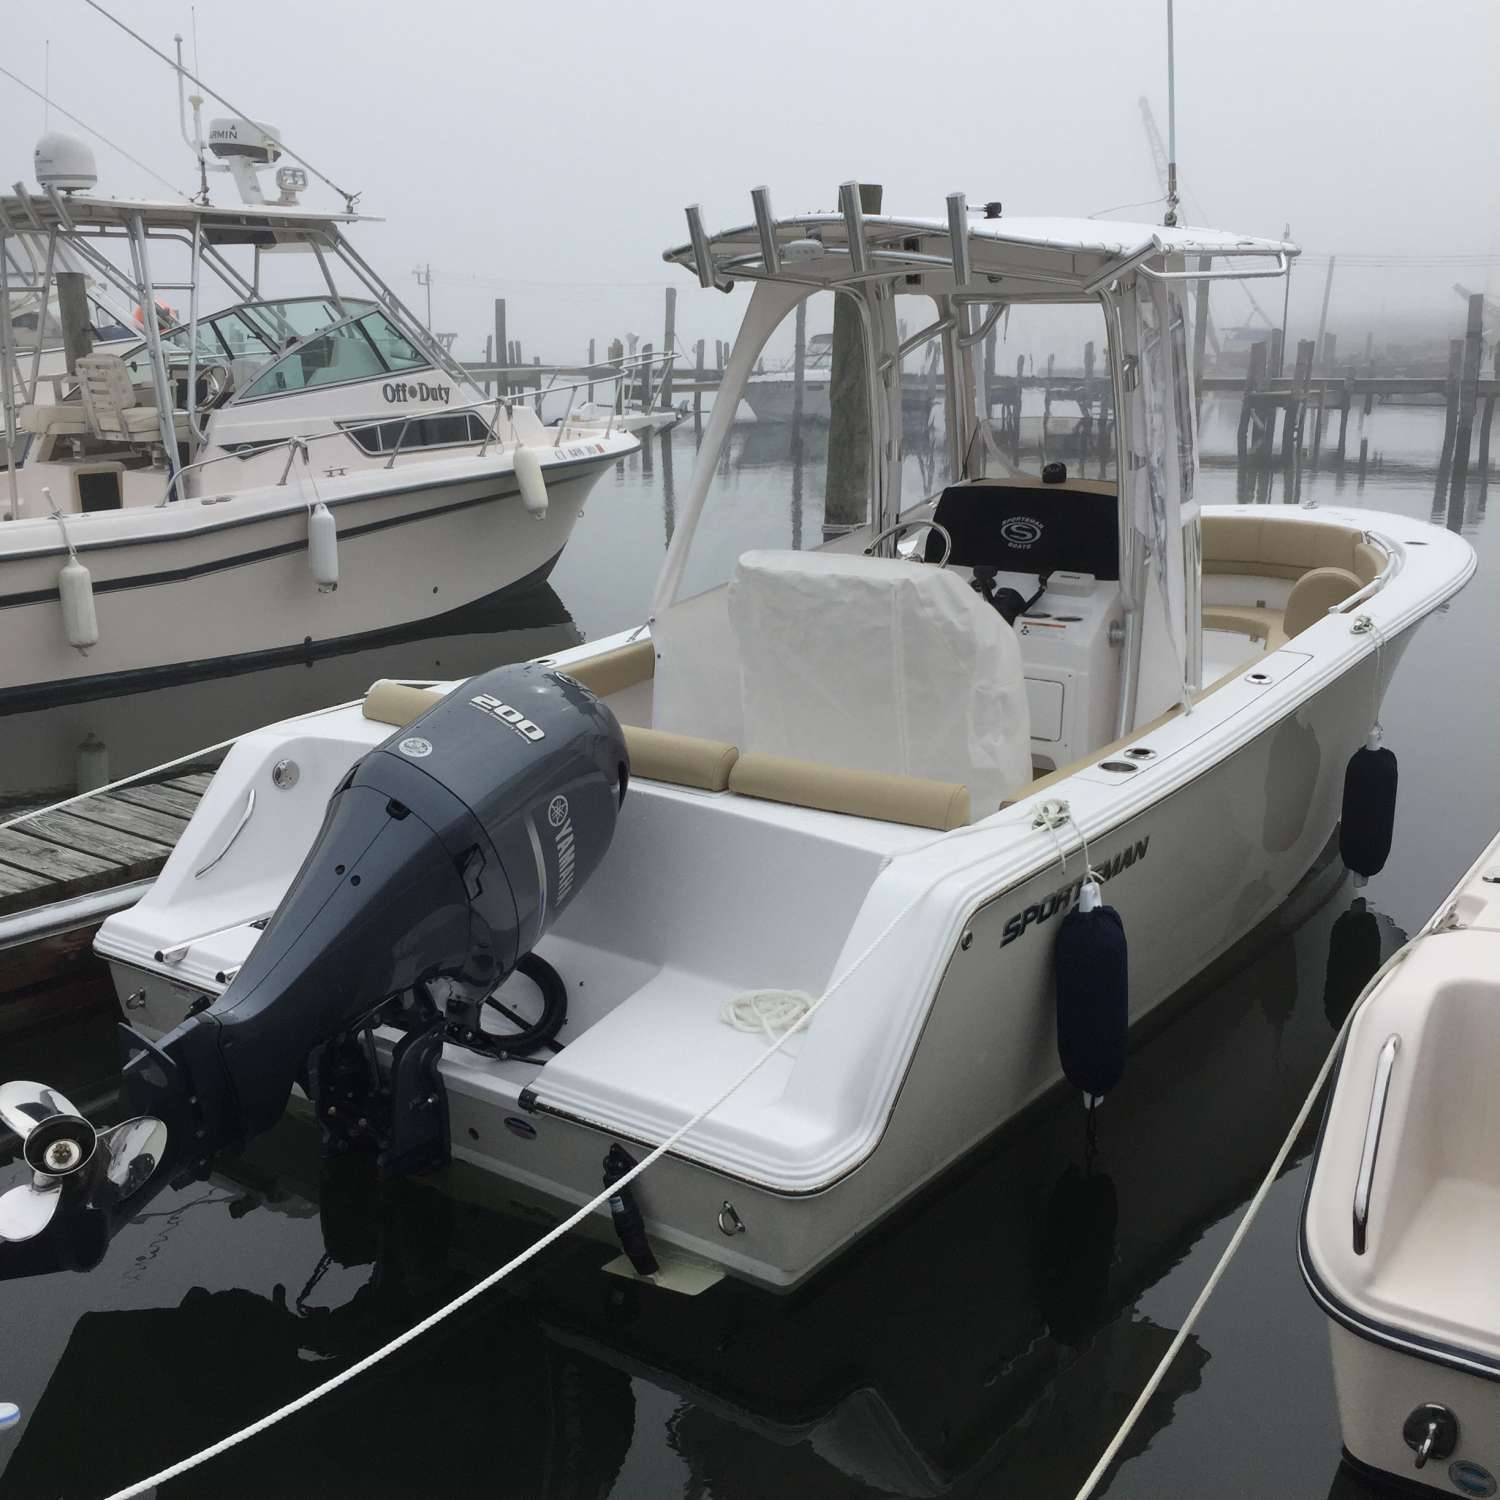 Title: Pick Up Day In New England 2017 - On board their Sportsman Heritage 231 Center Console - Location: Cranston, Rhode Island. Participating in the Photo Contest #SportsmanJune2017